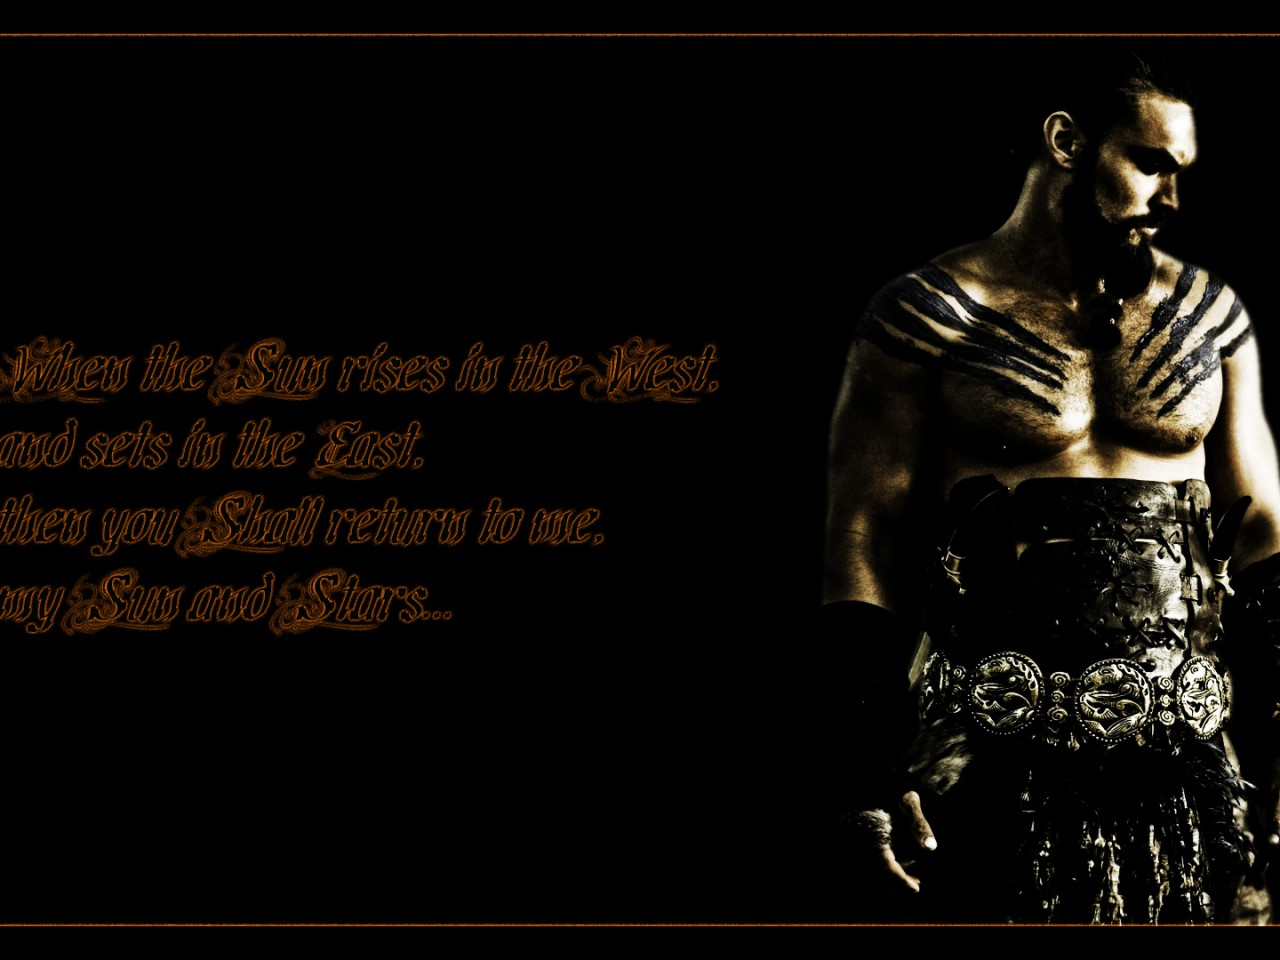 game of thrones drogo quote high resolution wallpaper HD wallpaper 1280x960